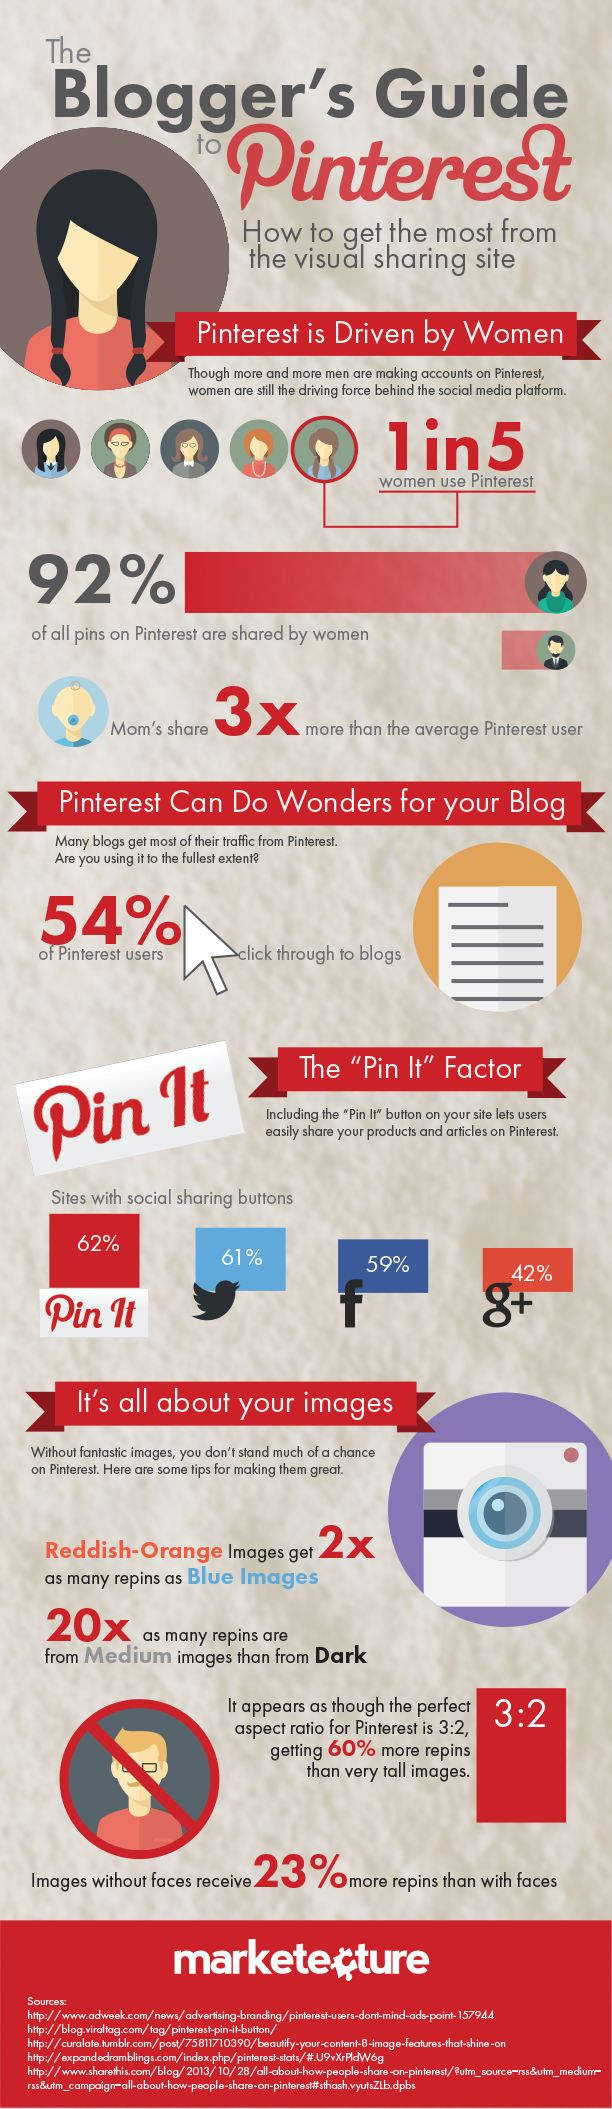 The Blogger's Guide to Pinterest #socialmedia #marketing #infographic